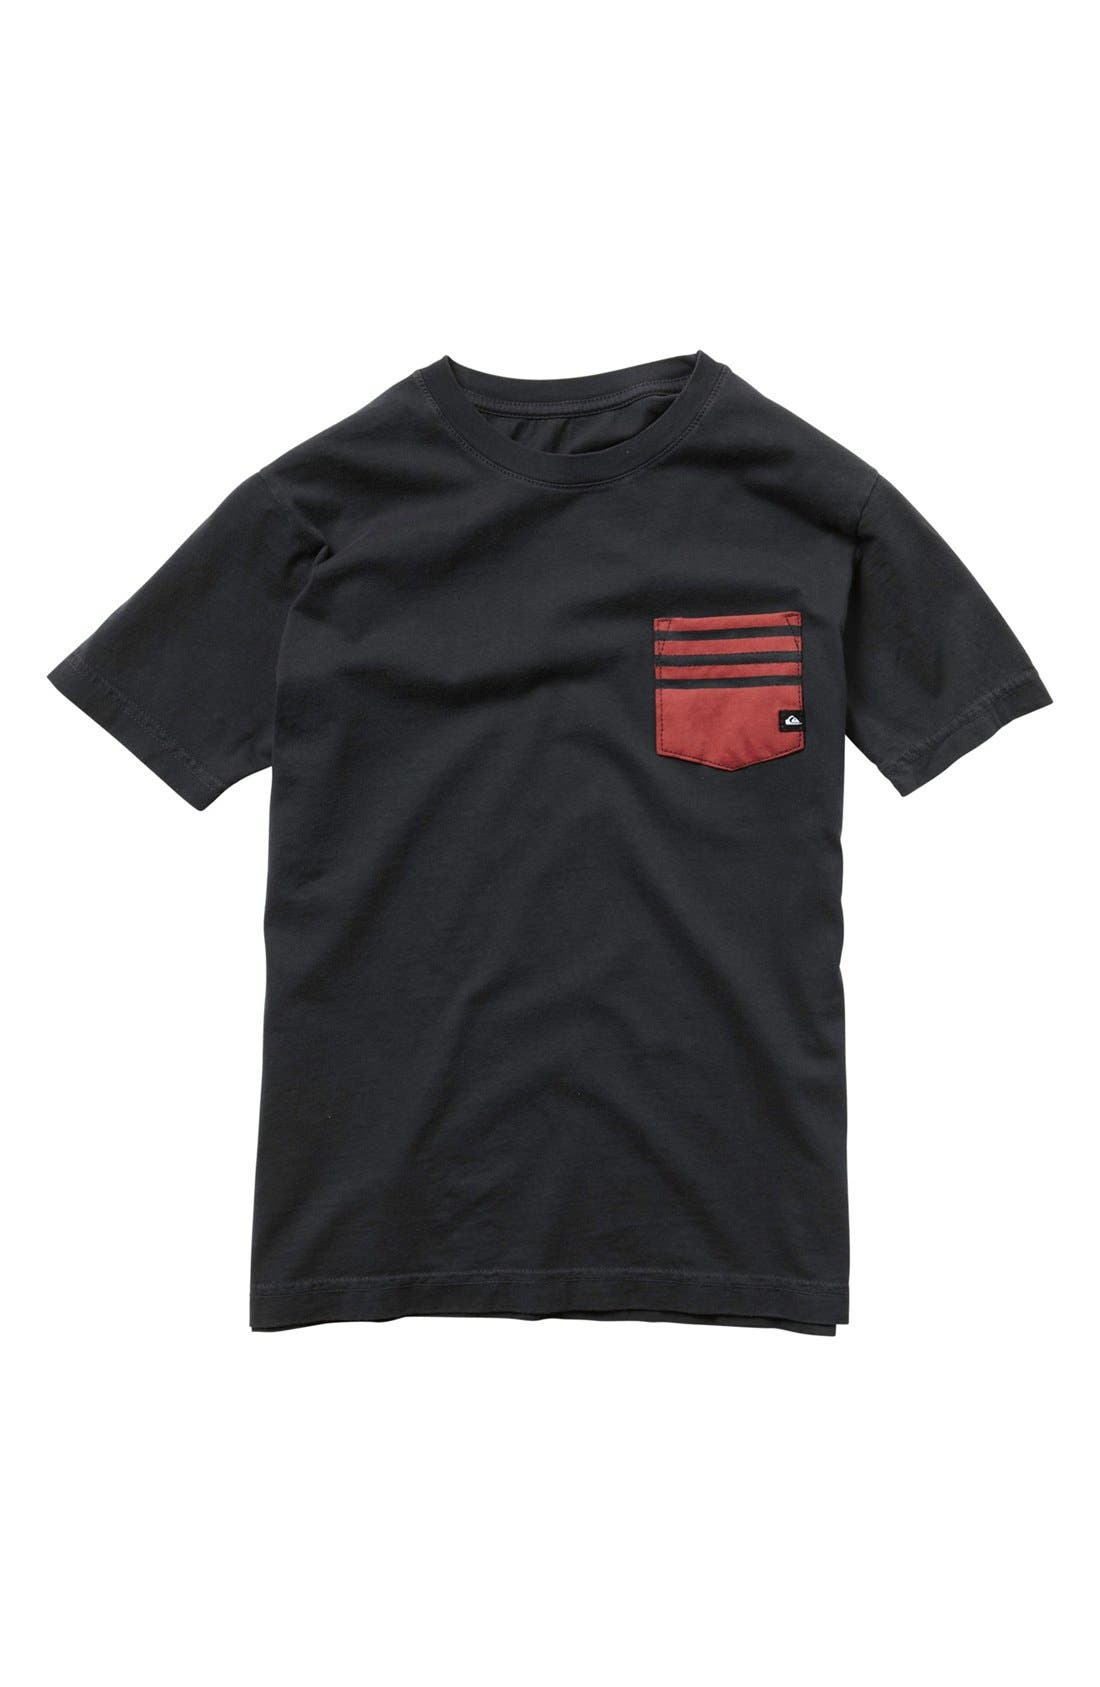 Main Image - Quiksilver Screenprinted T-Shirt (Big Boys)